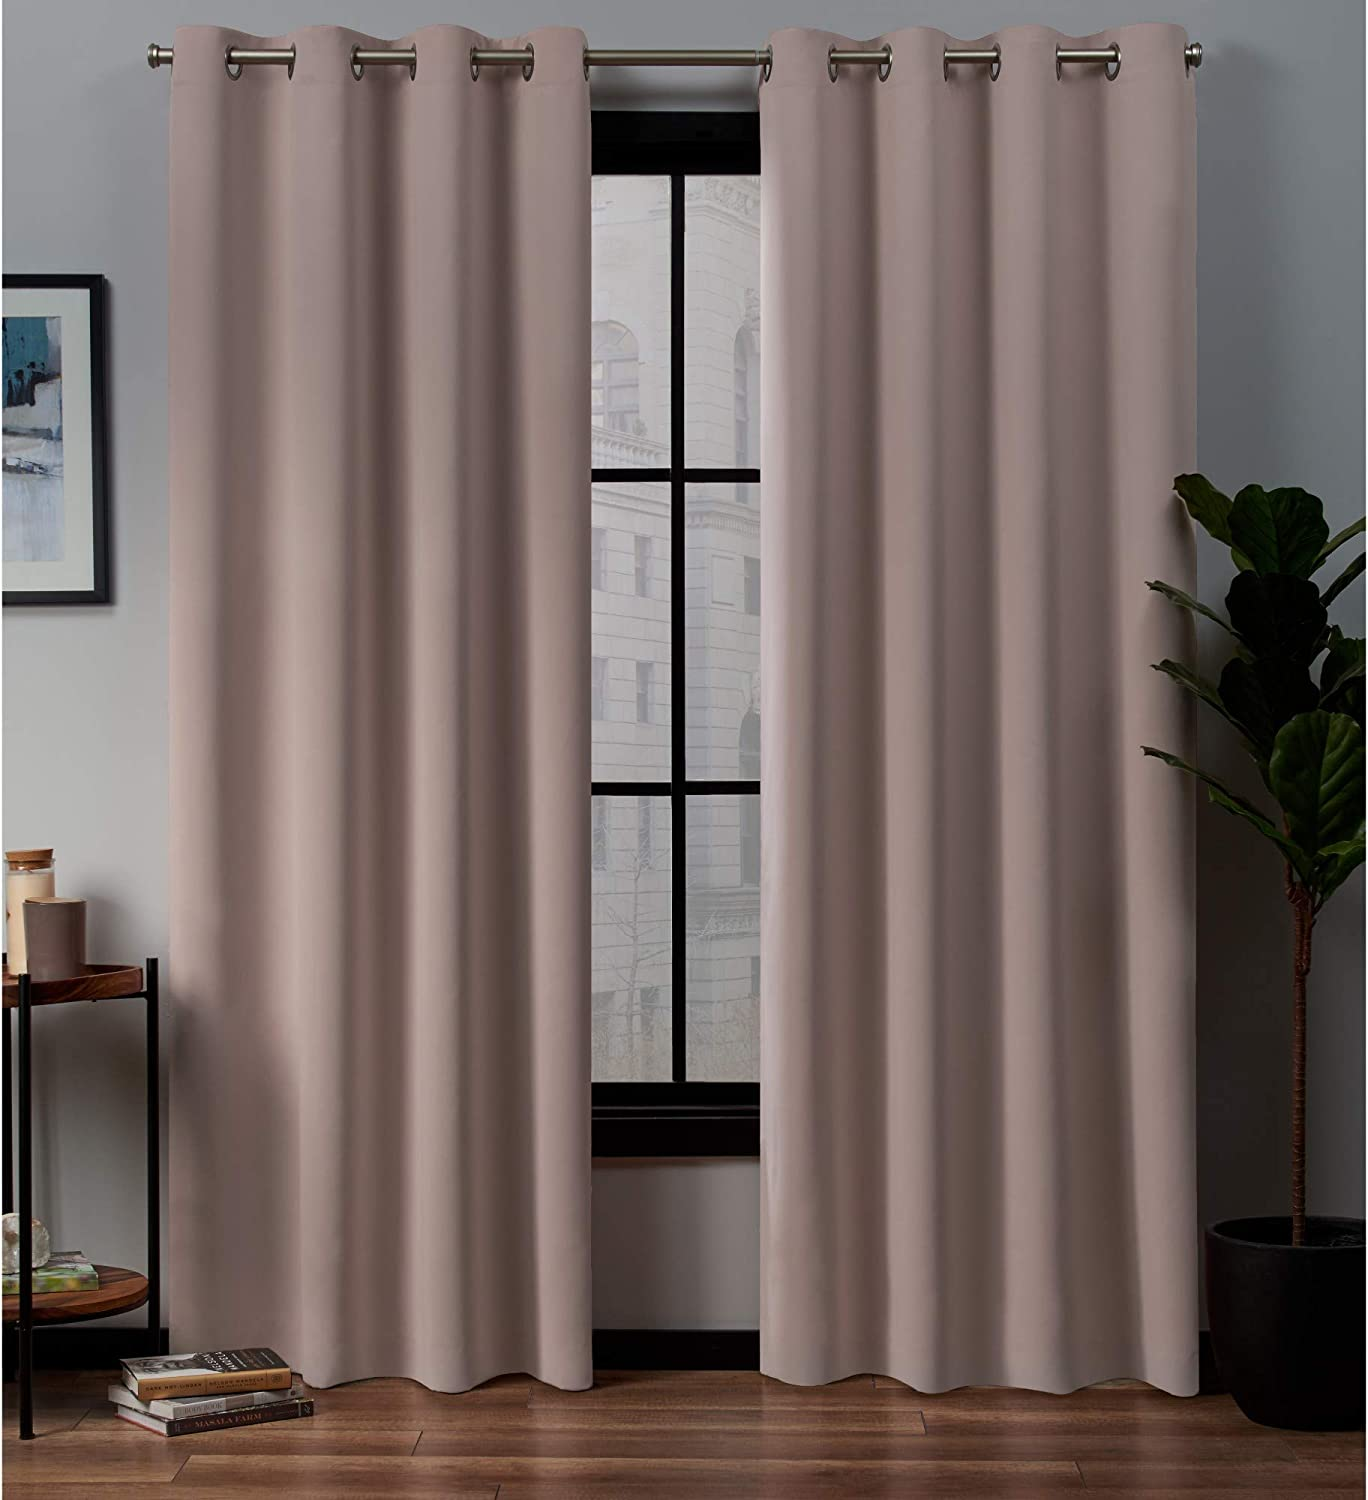 Exclusive Home Curtains Academy Total Blackout Grommet Top Curtain Panel Pair, Blush, 52x84